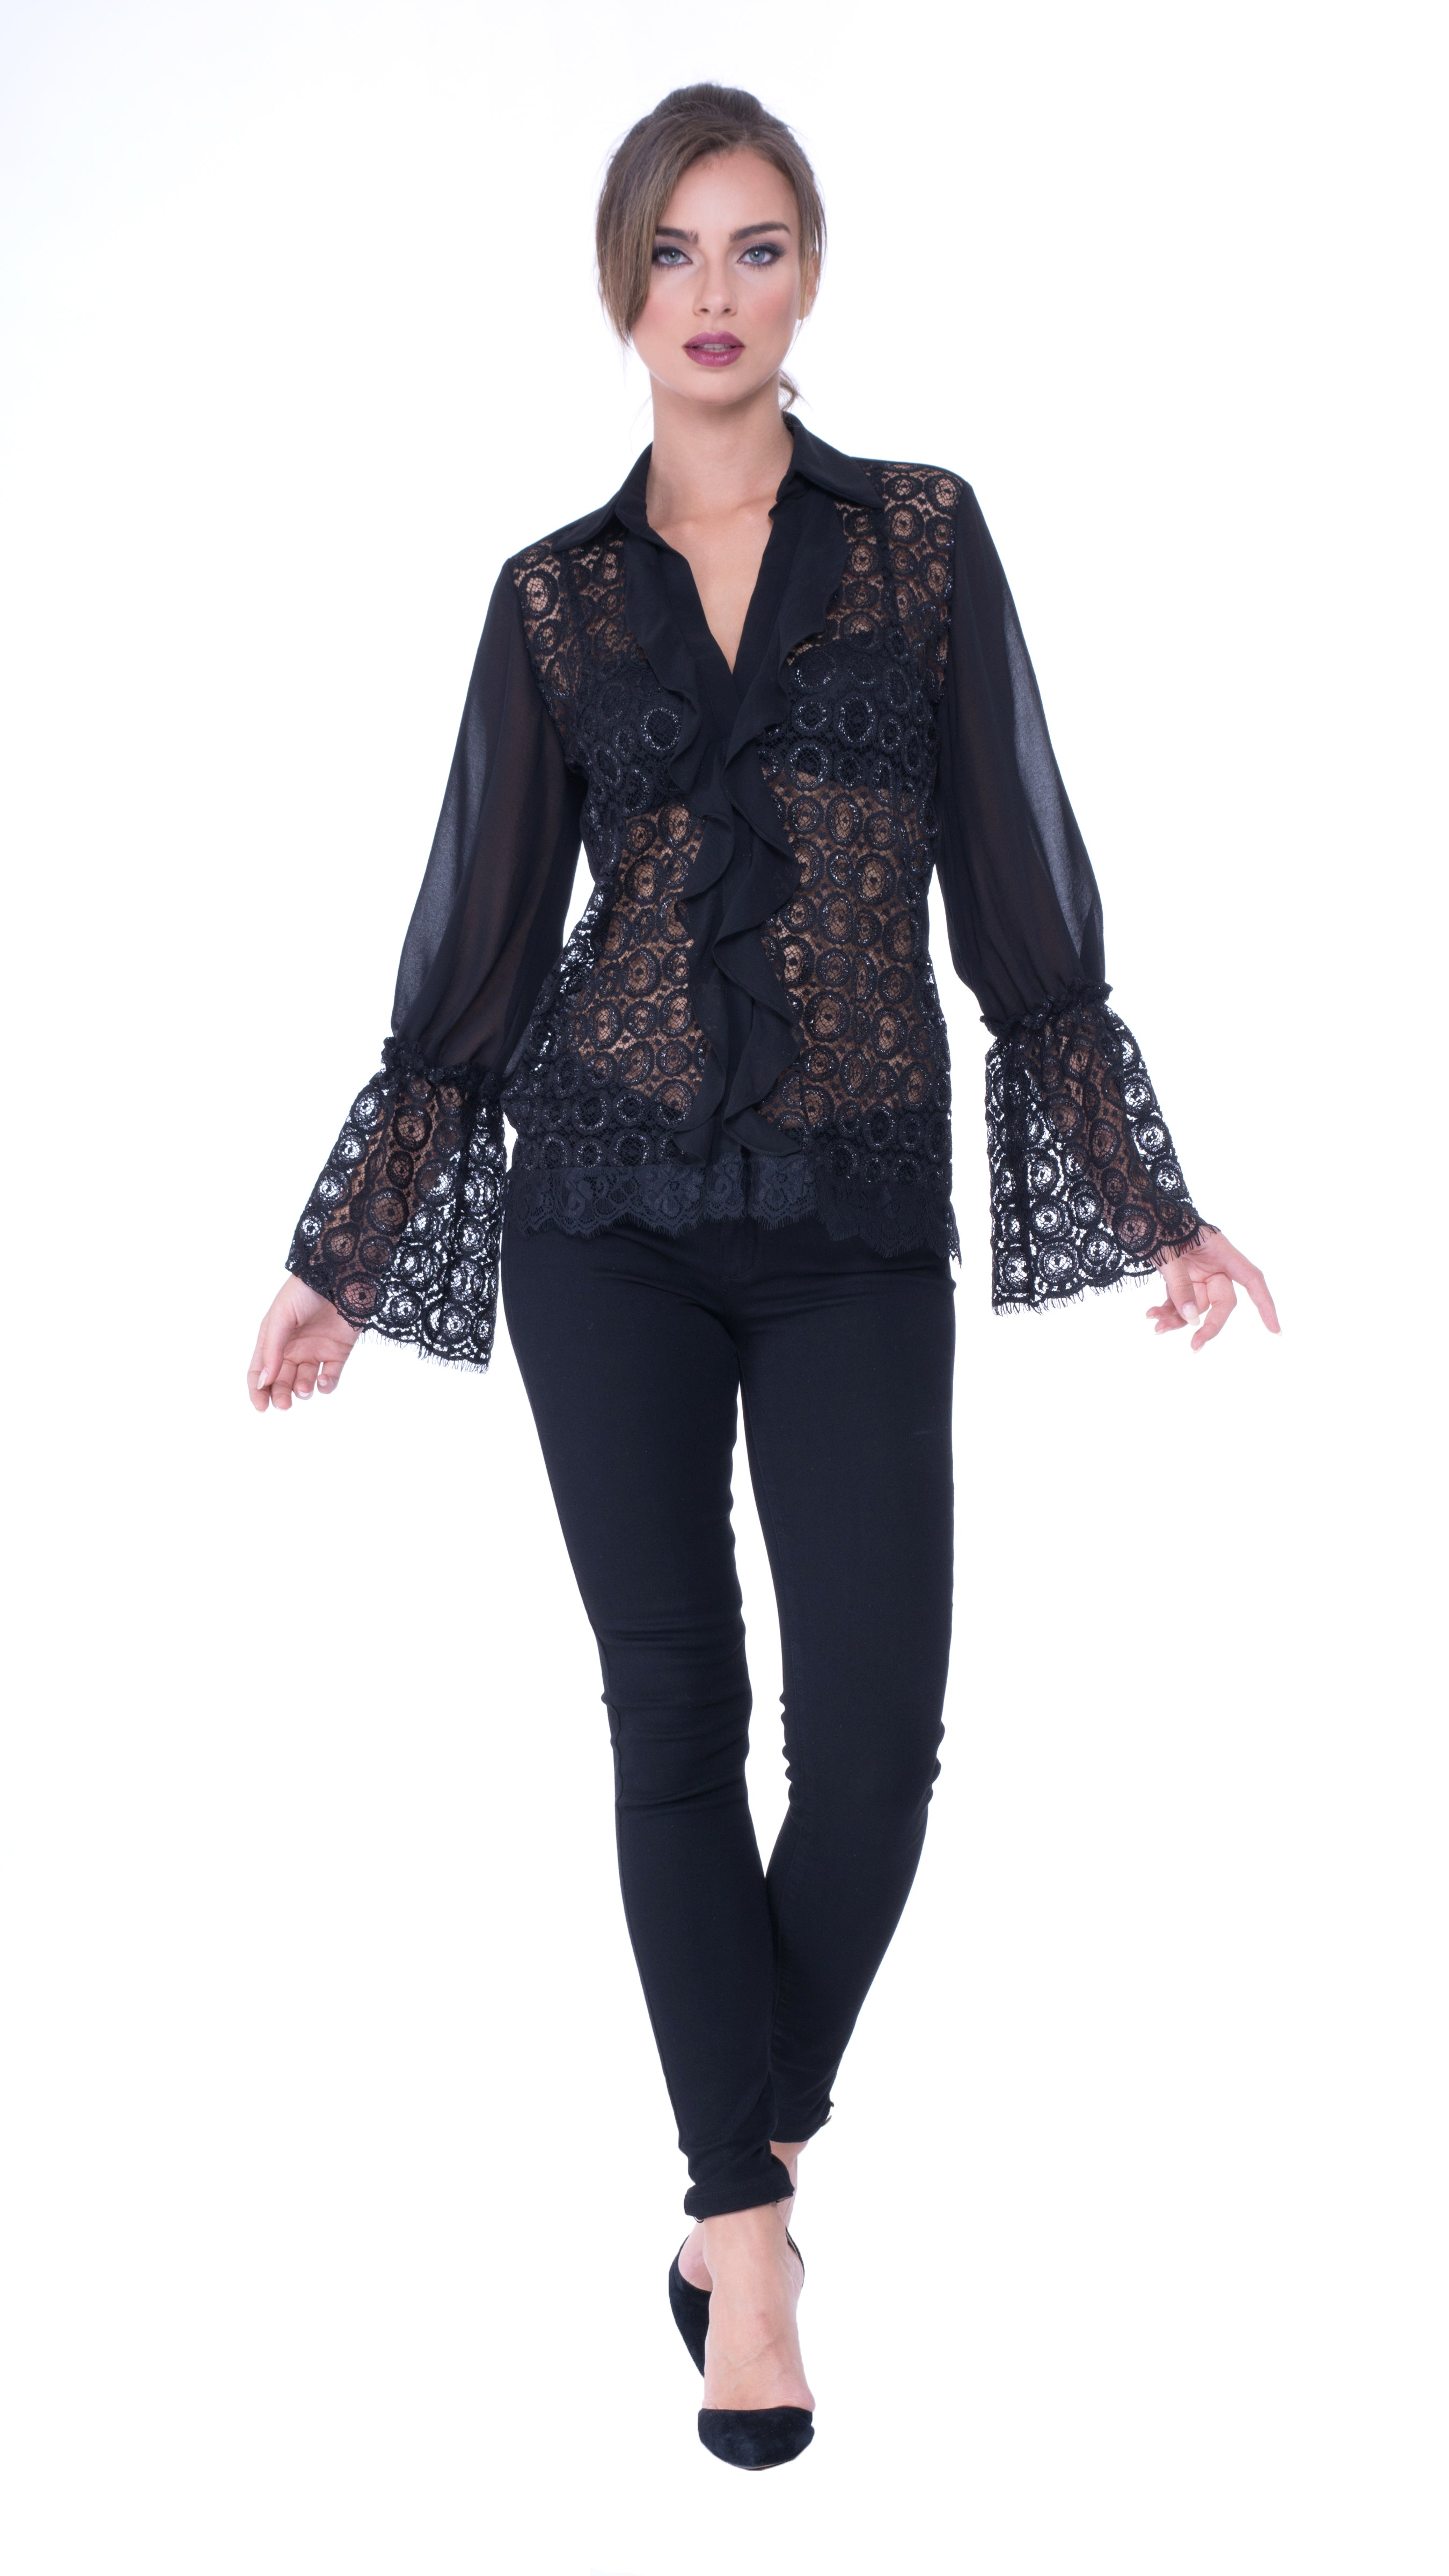 Helen lace top